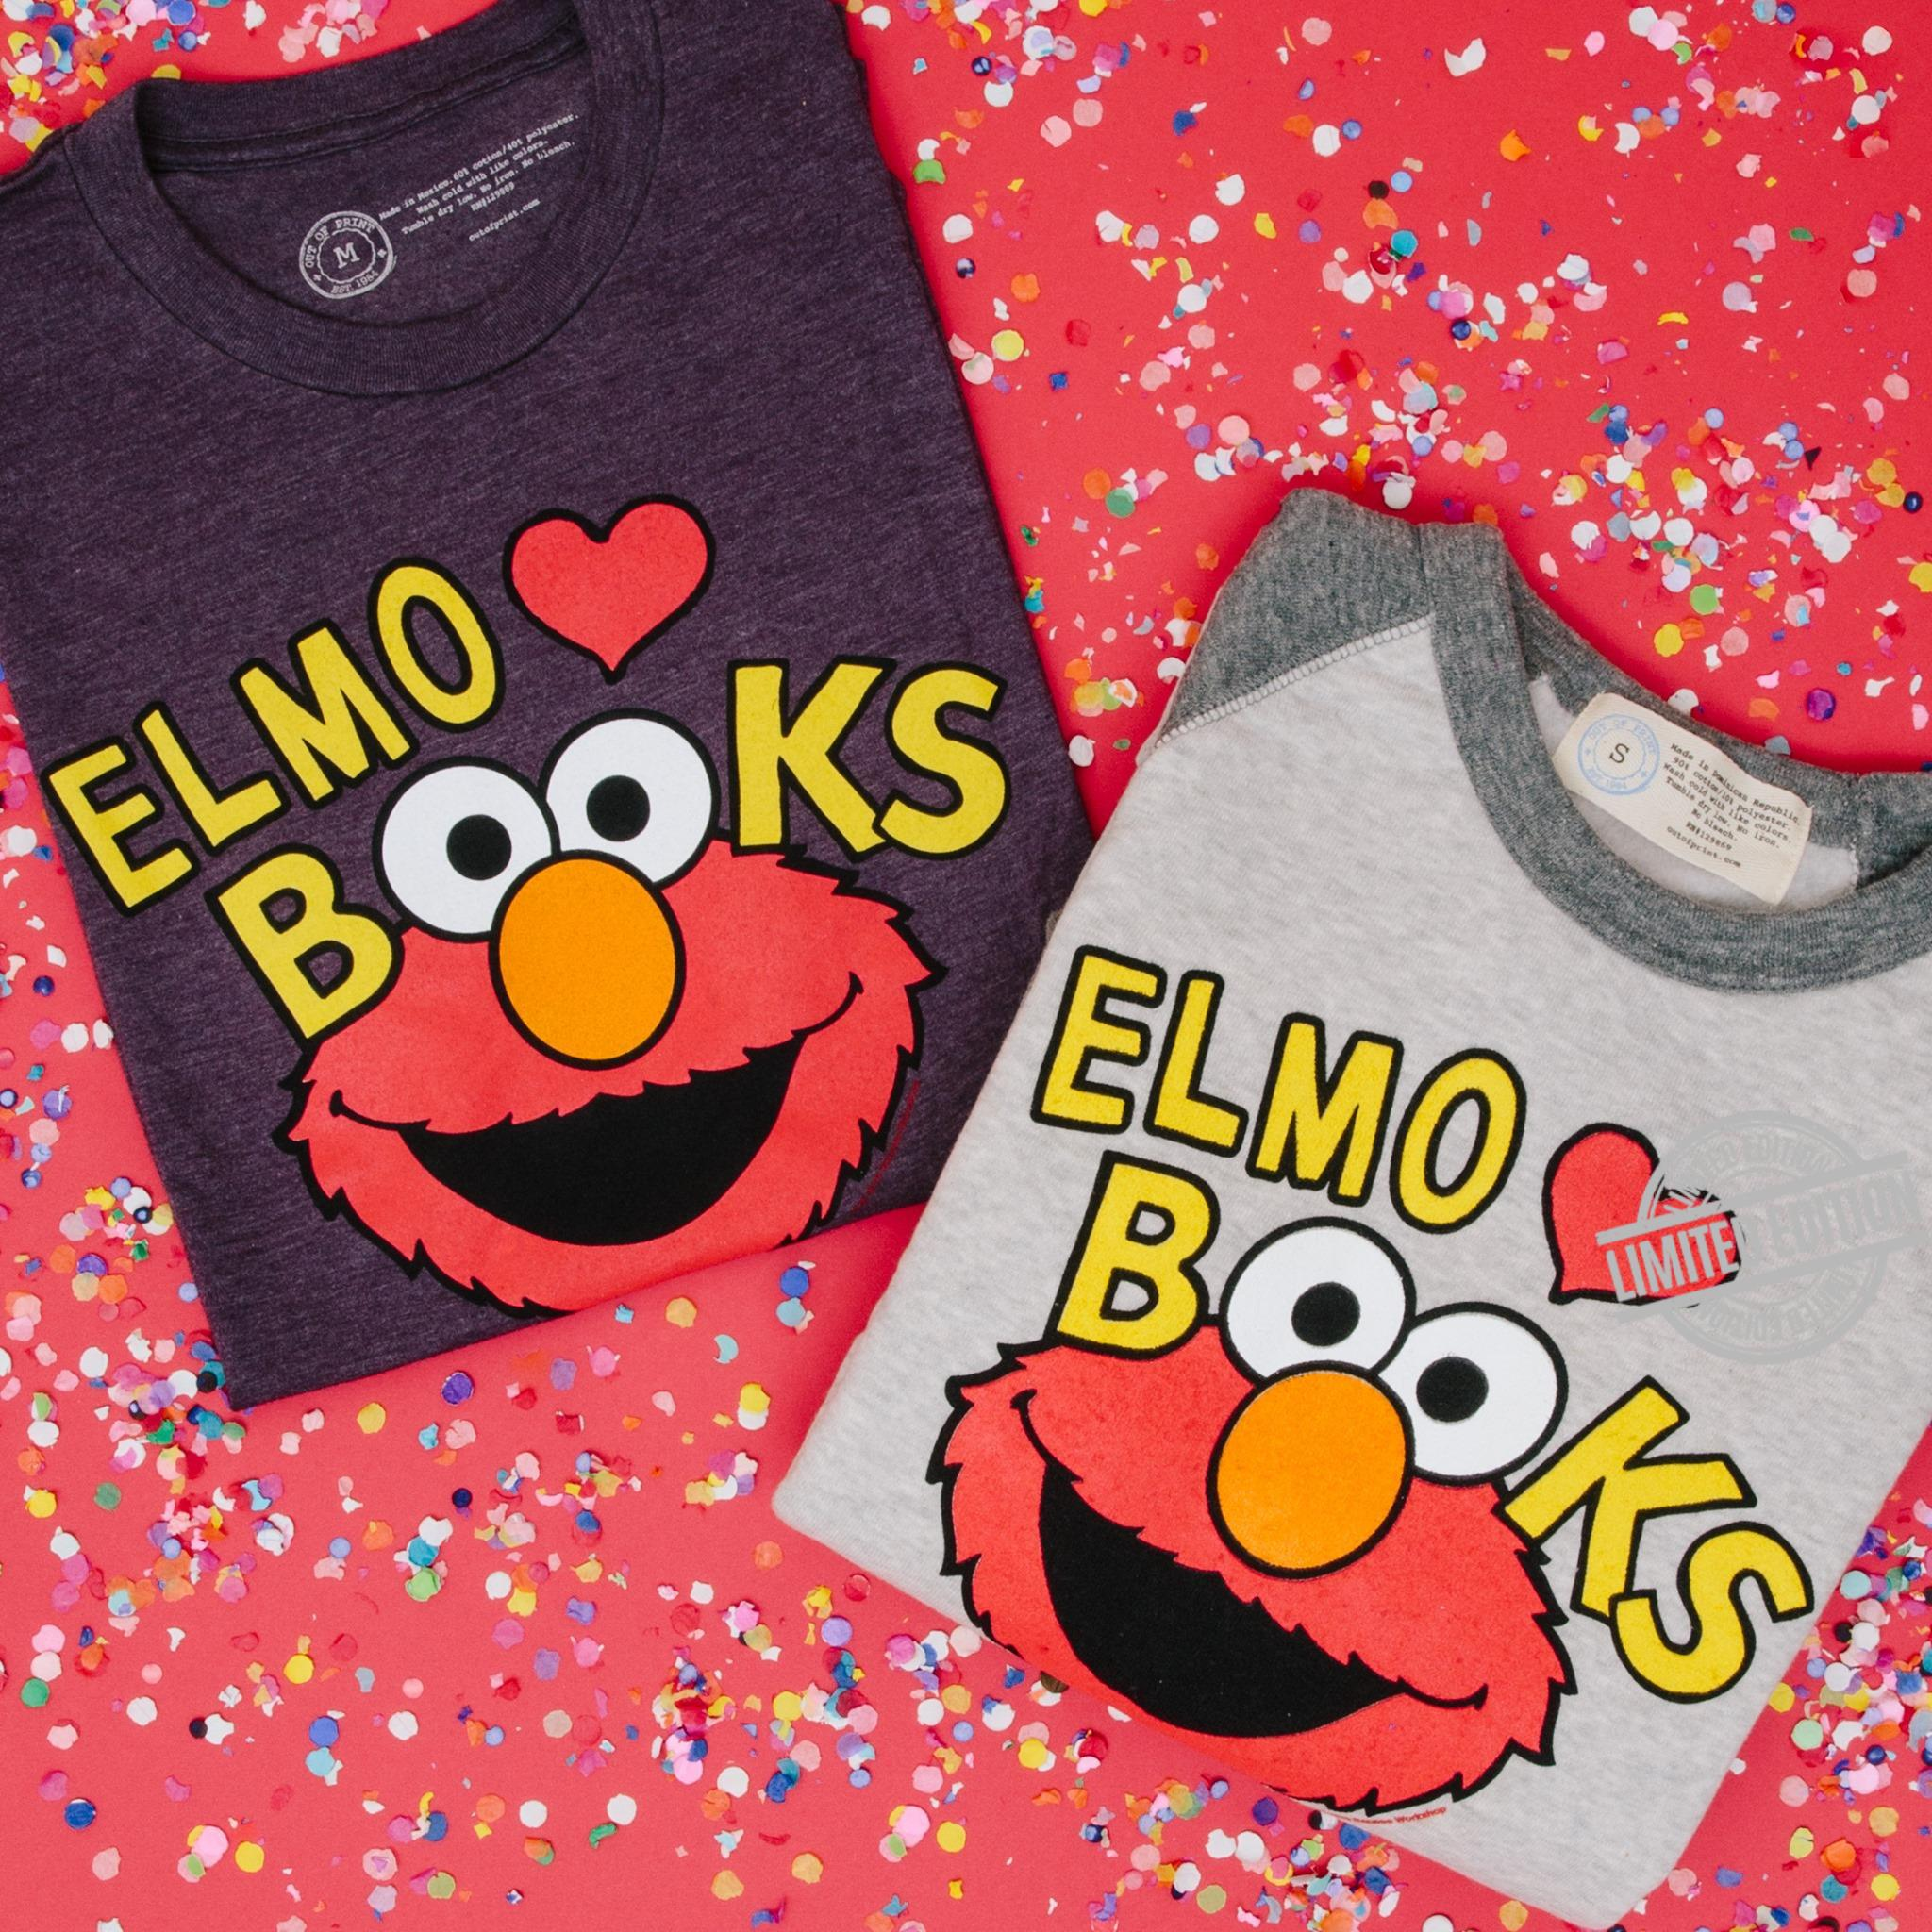 Elmo Books Funny Shirt